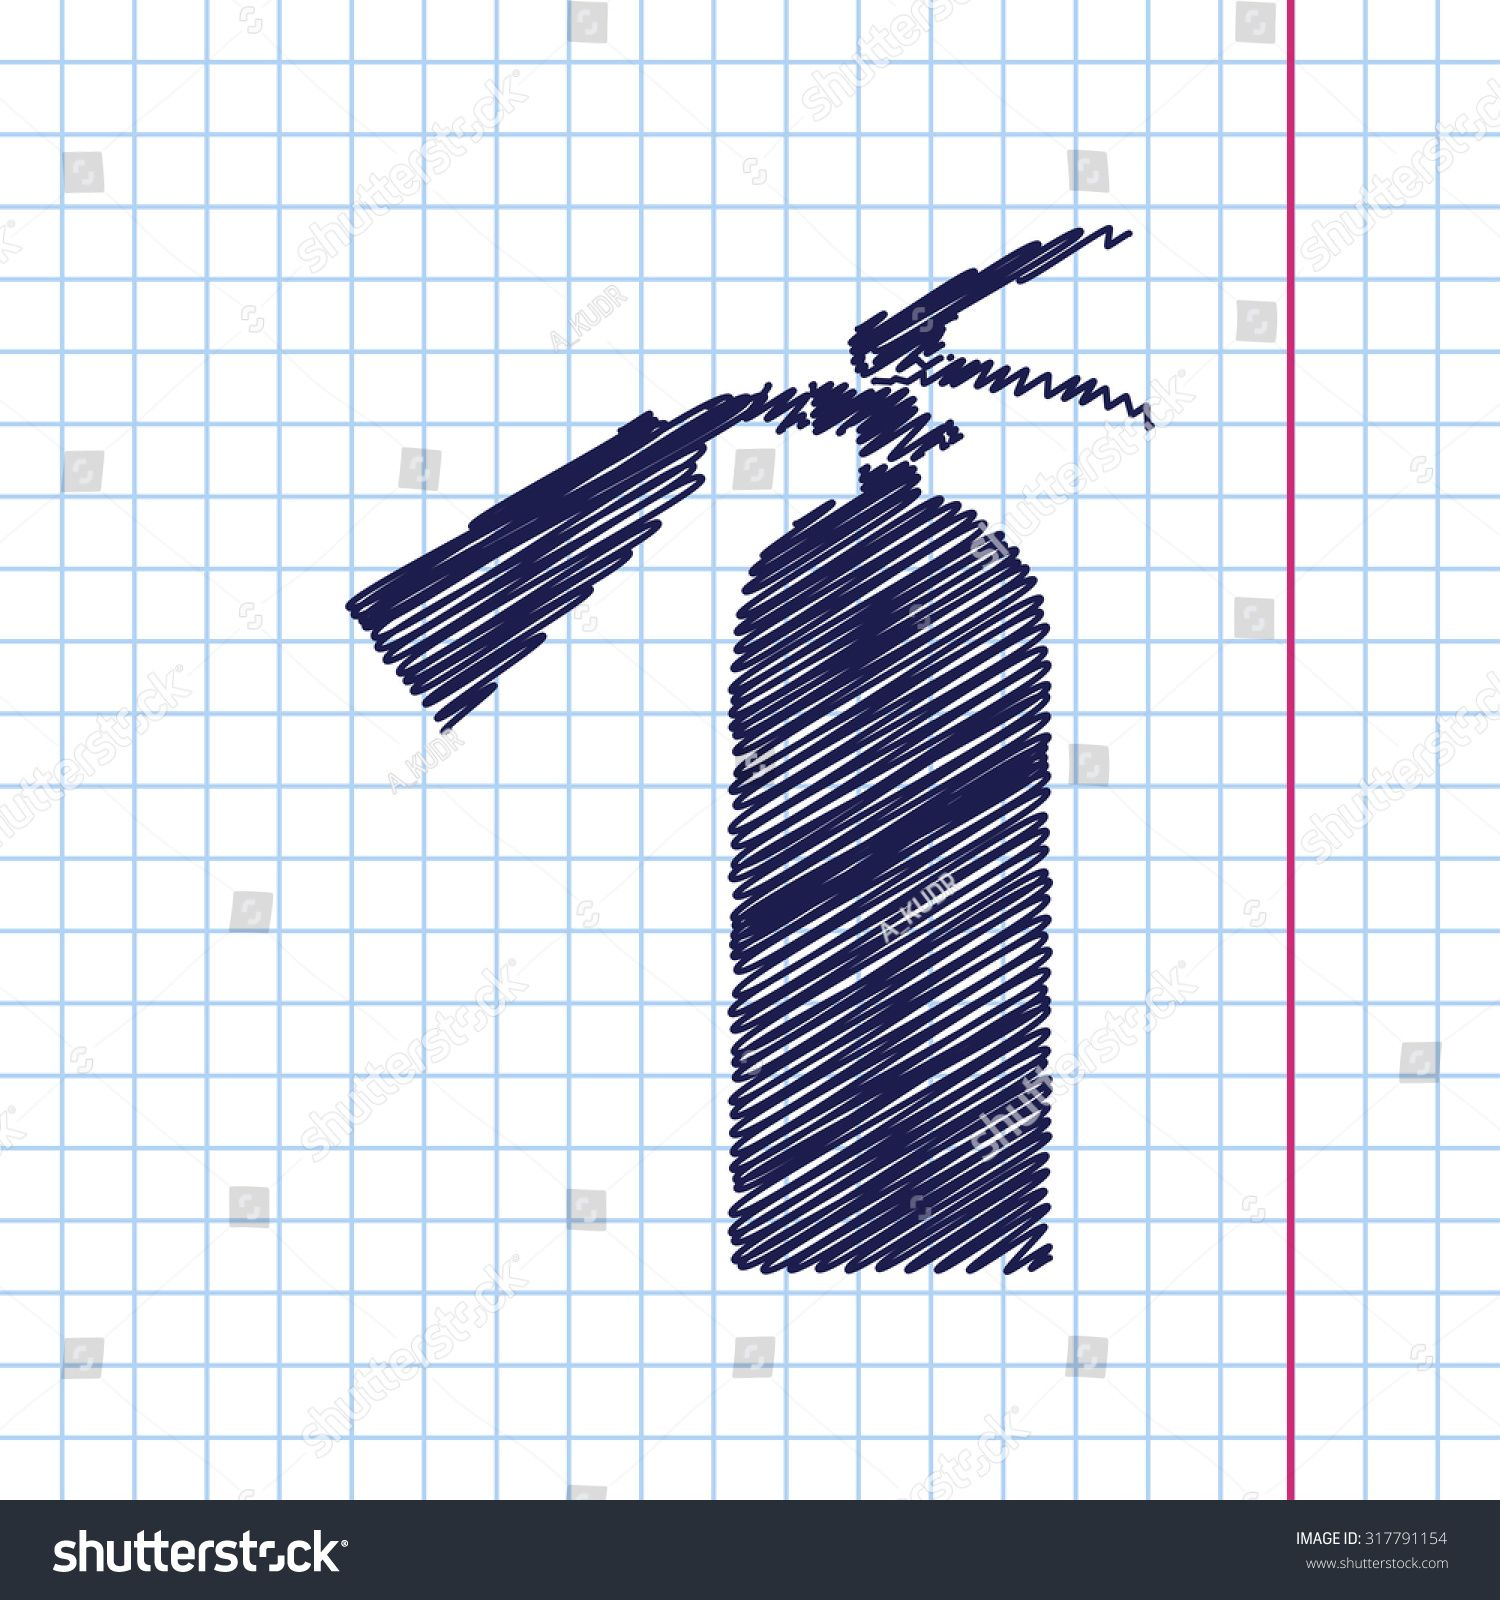 Vector hand drawn fire extinguisher icon on copybook Ad